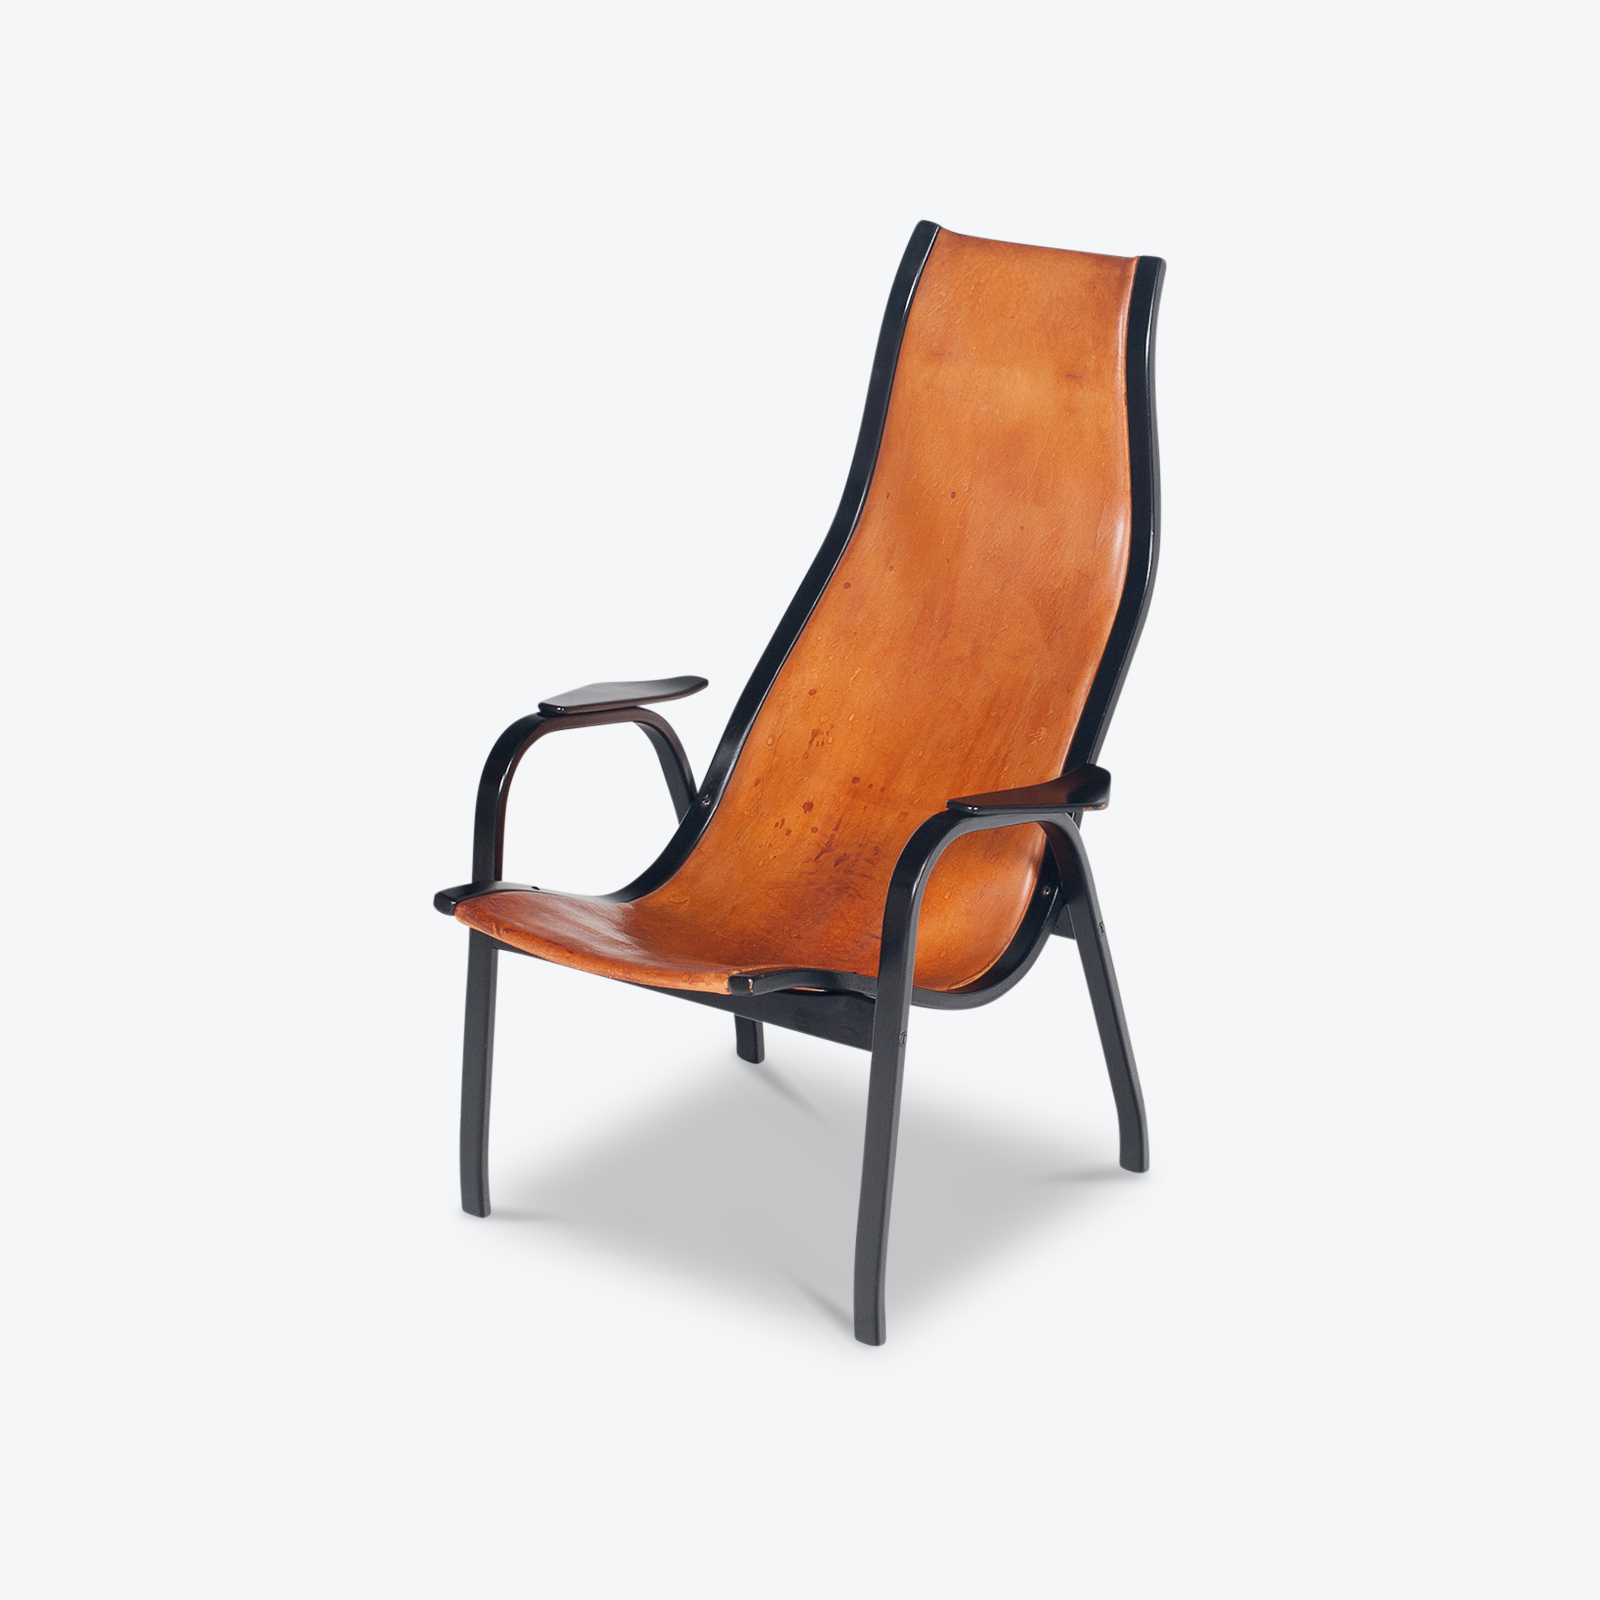 Kurva Lounge Chair By Yngve Ekstrom For Swedese In Tan Leather, 1950s, Sweden Hero